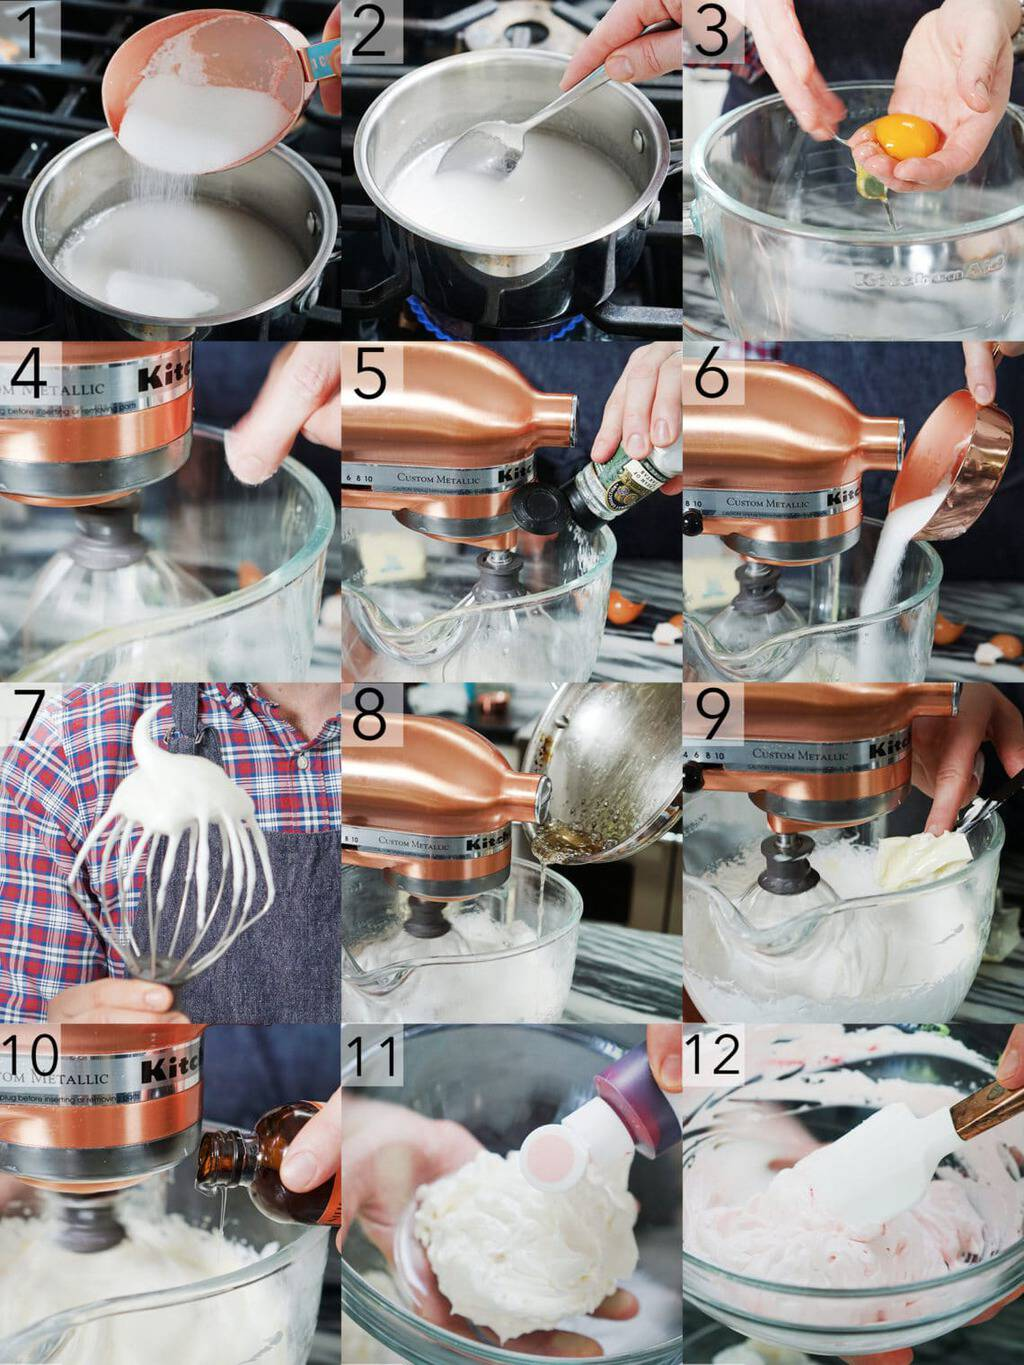 Photo collage showing steps to make Italian meringue Buttercream